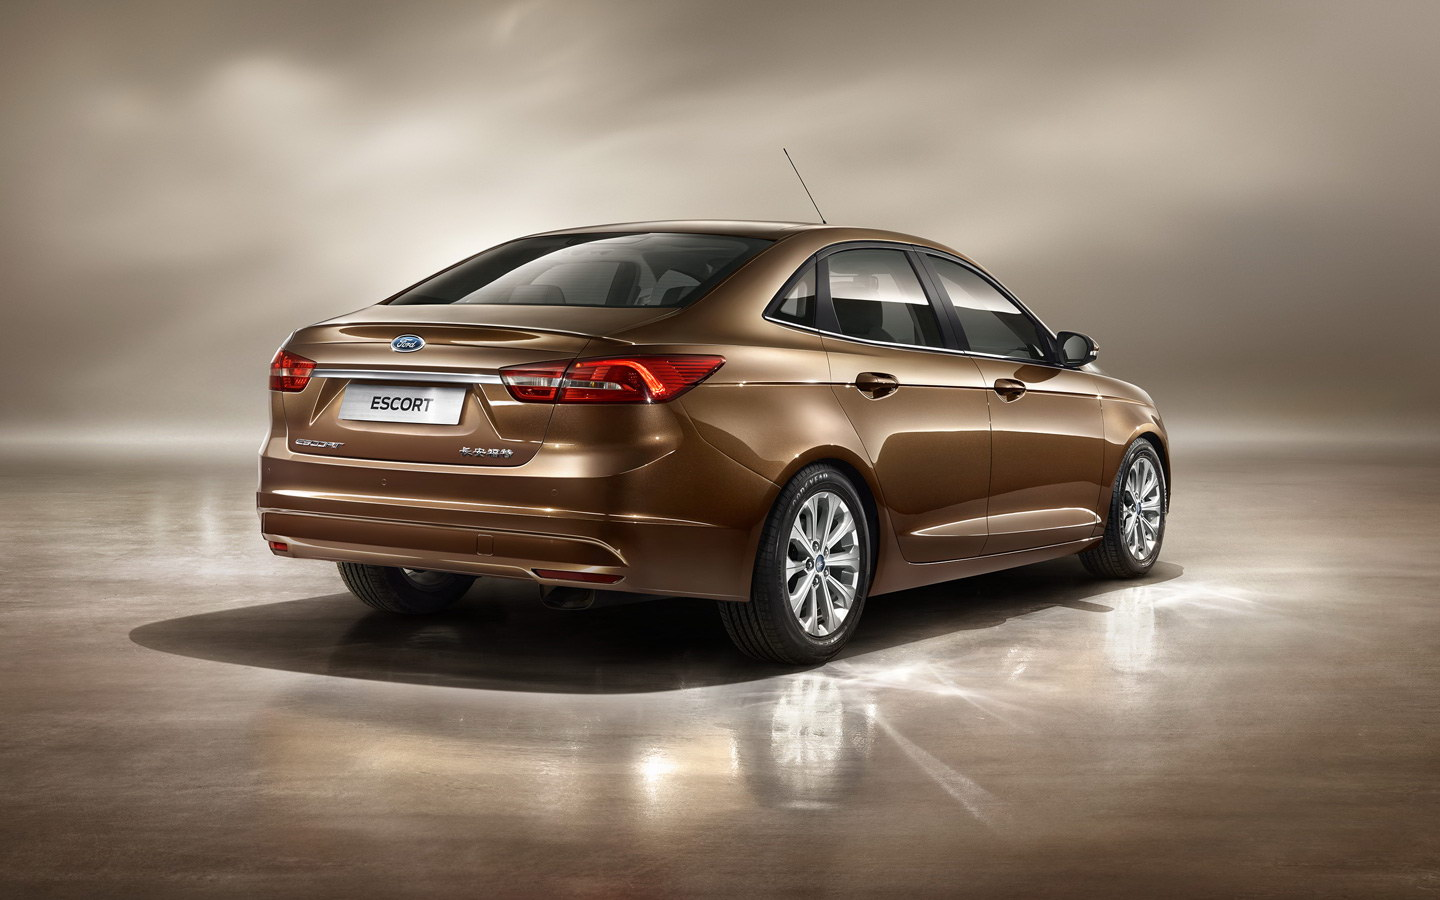 2015 Ford Escort To Debut At Guangzhou Auto Show